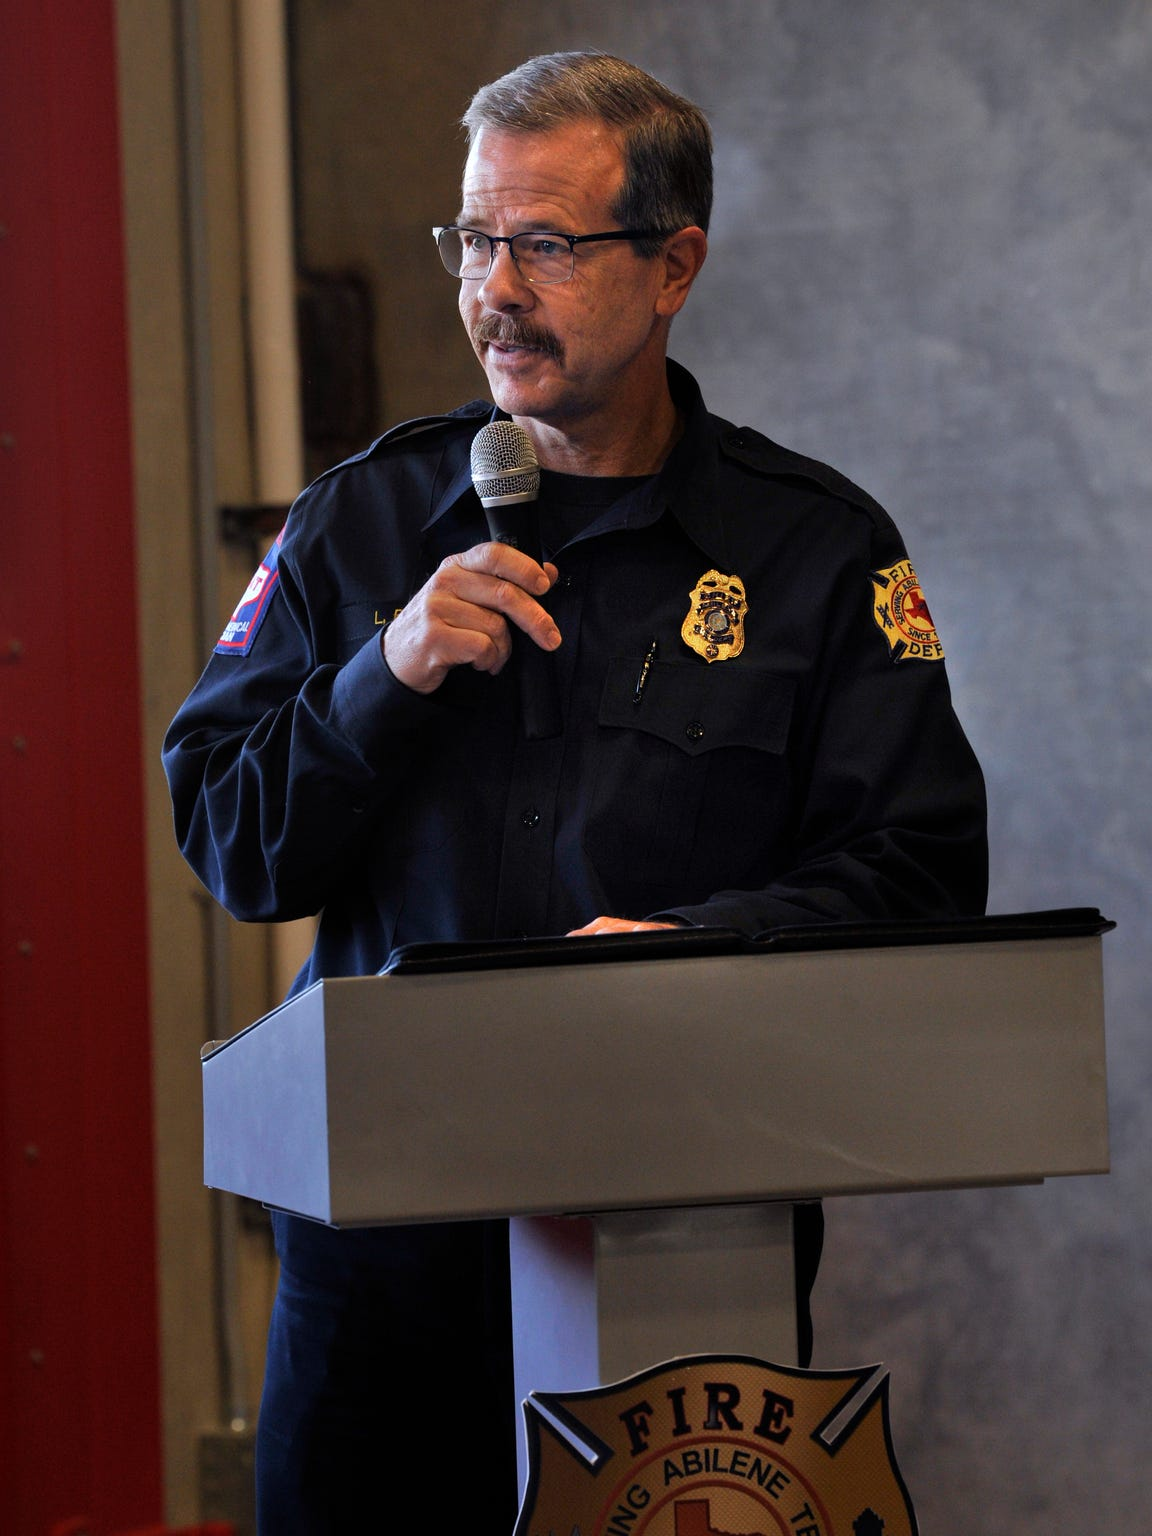 Abilene Fire Department Chief Larry Bell speaks during the dedication of the new Station 7 Friday. During the event, Bell announced he will retire May 31.